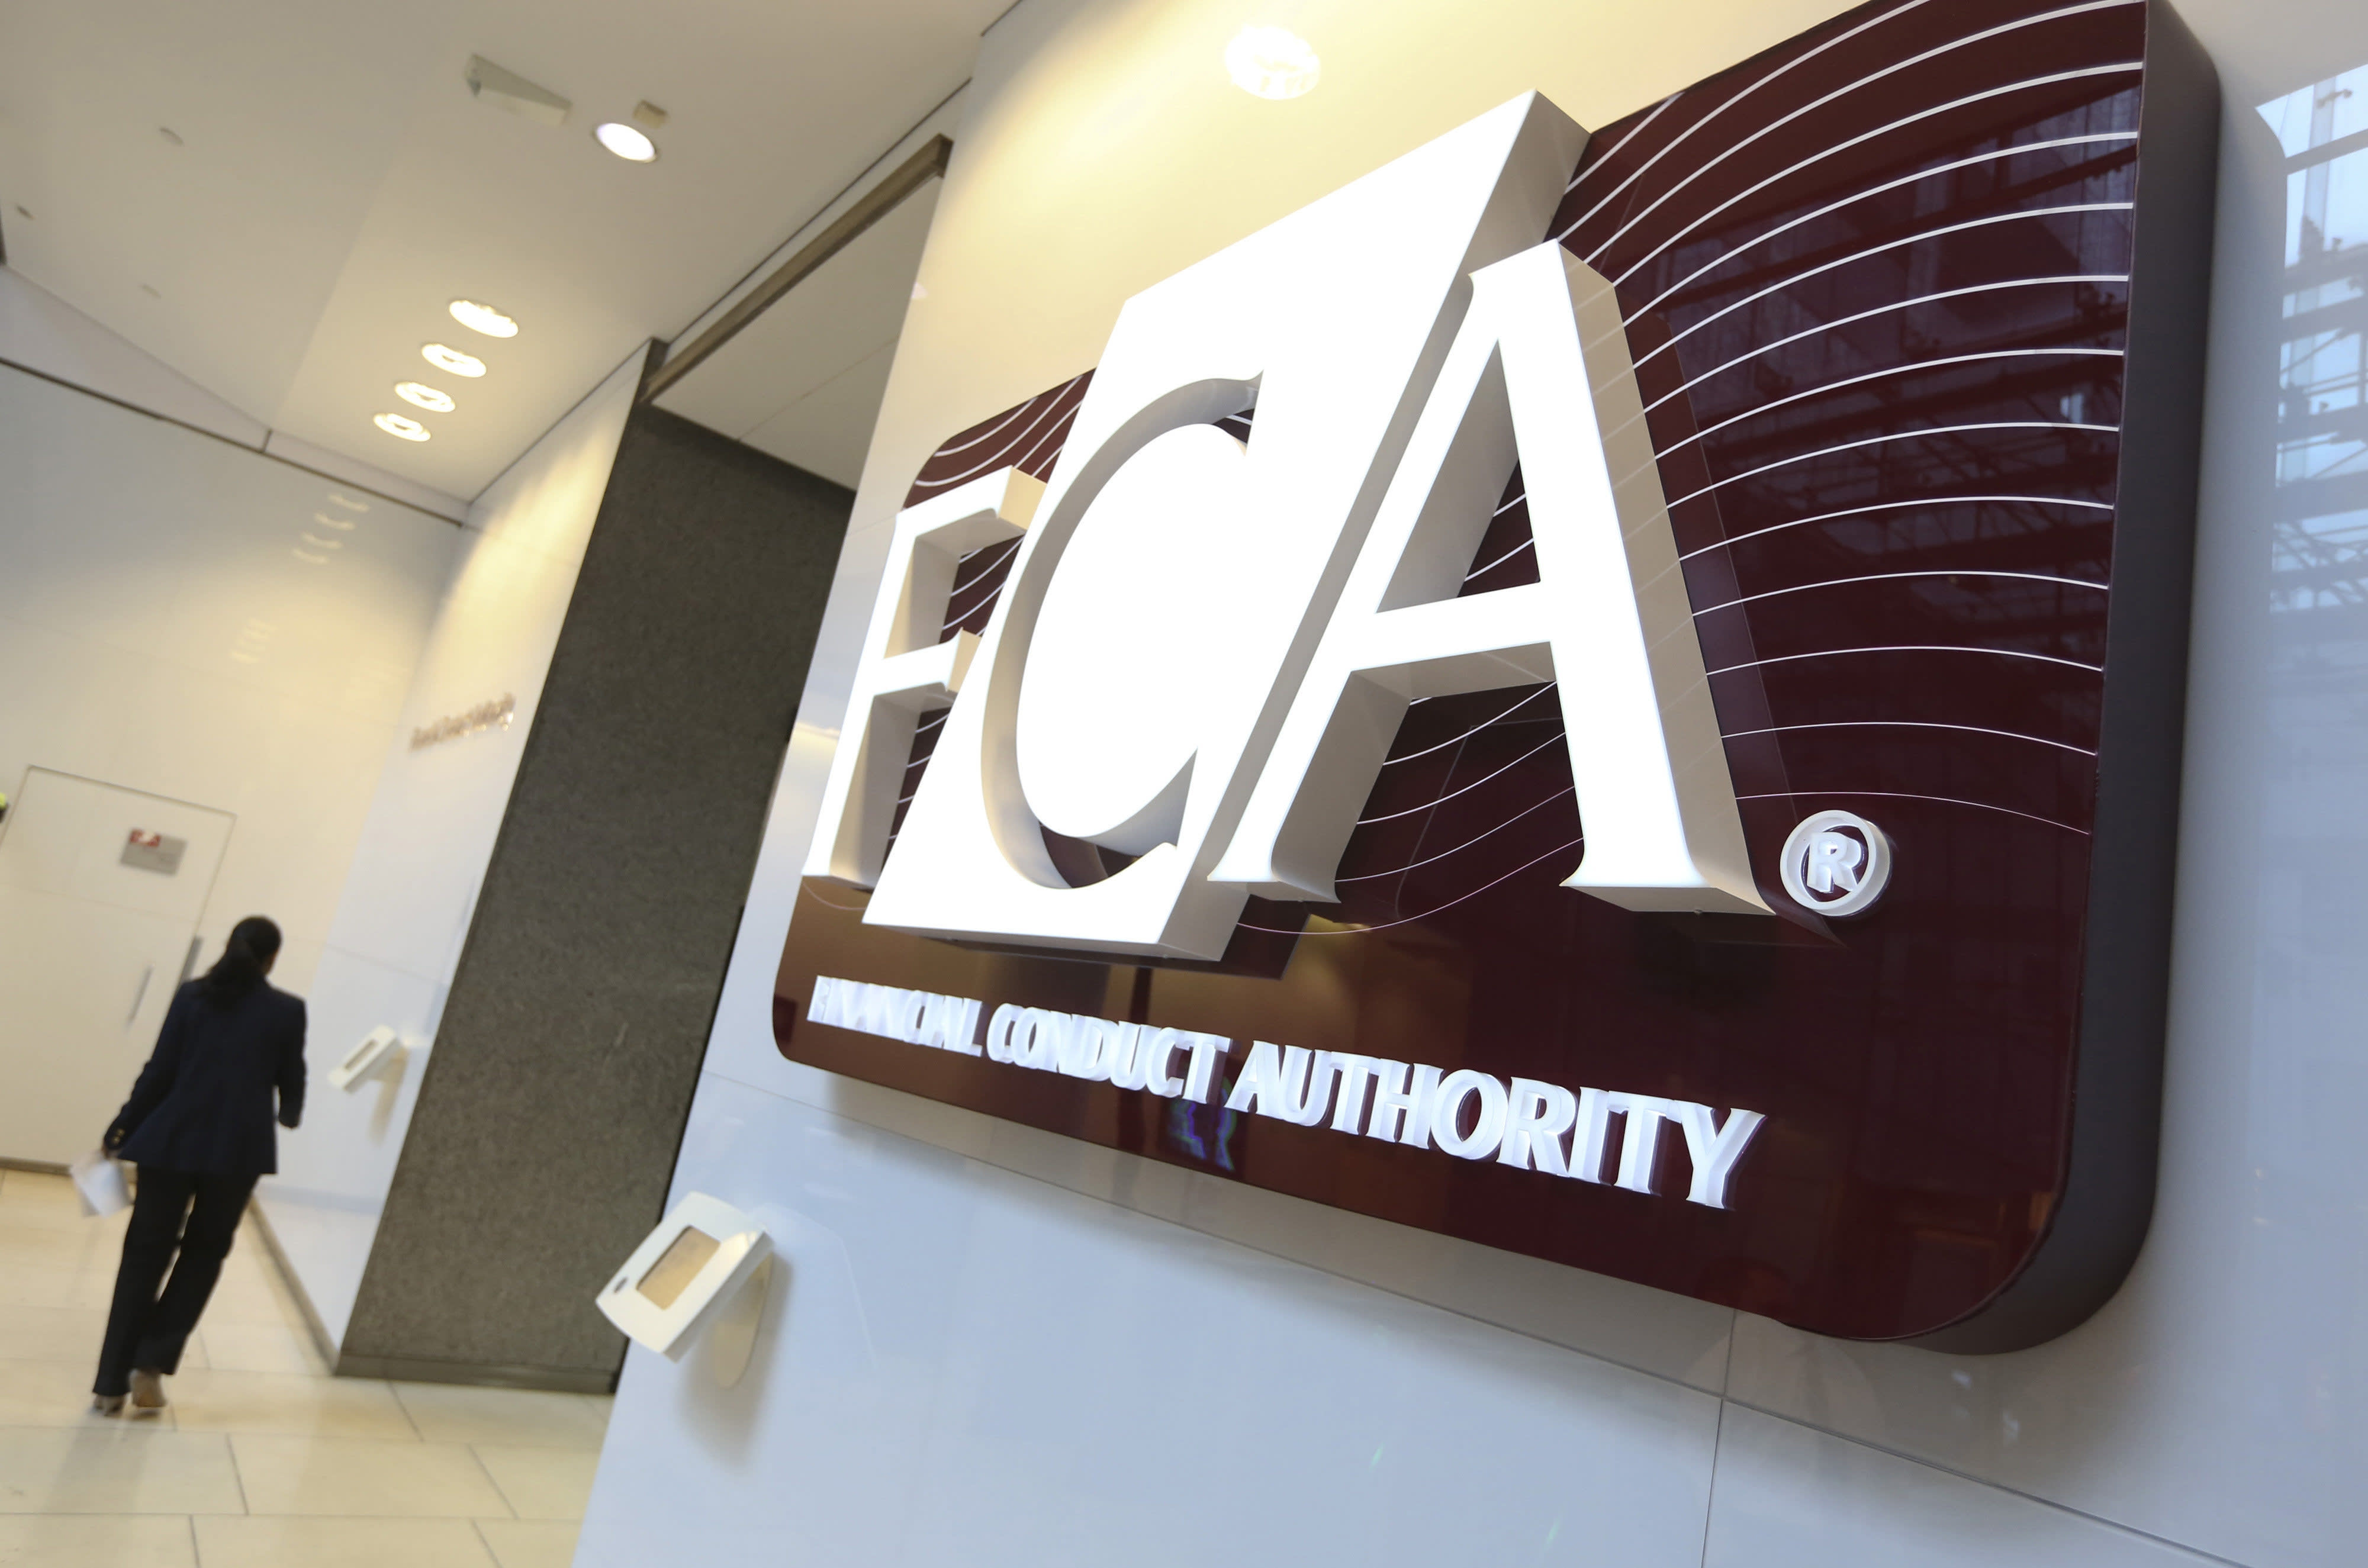 FCA warns of asset manager clones